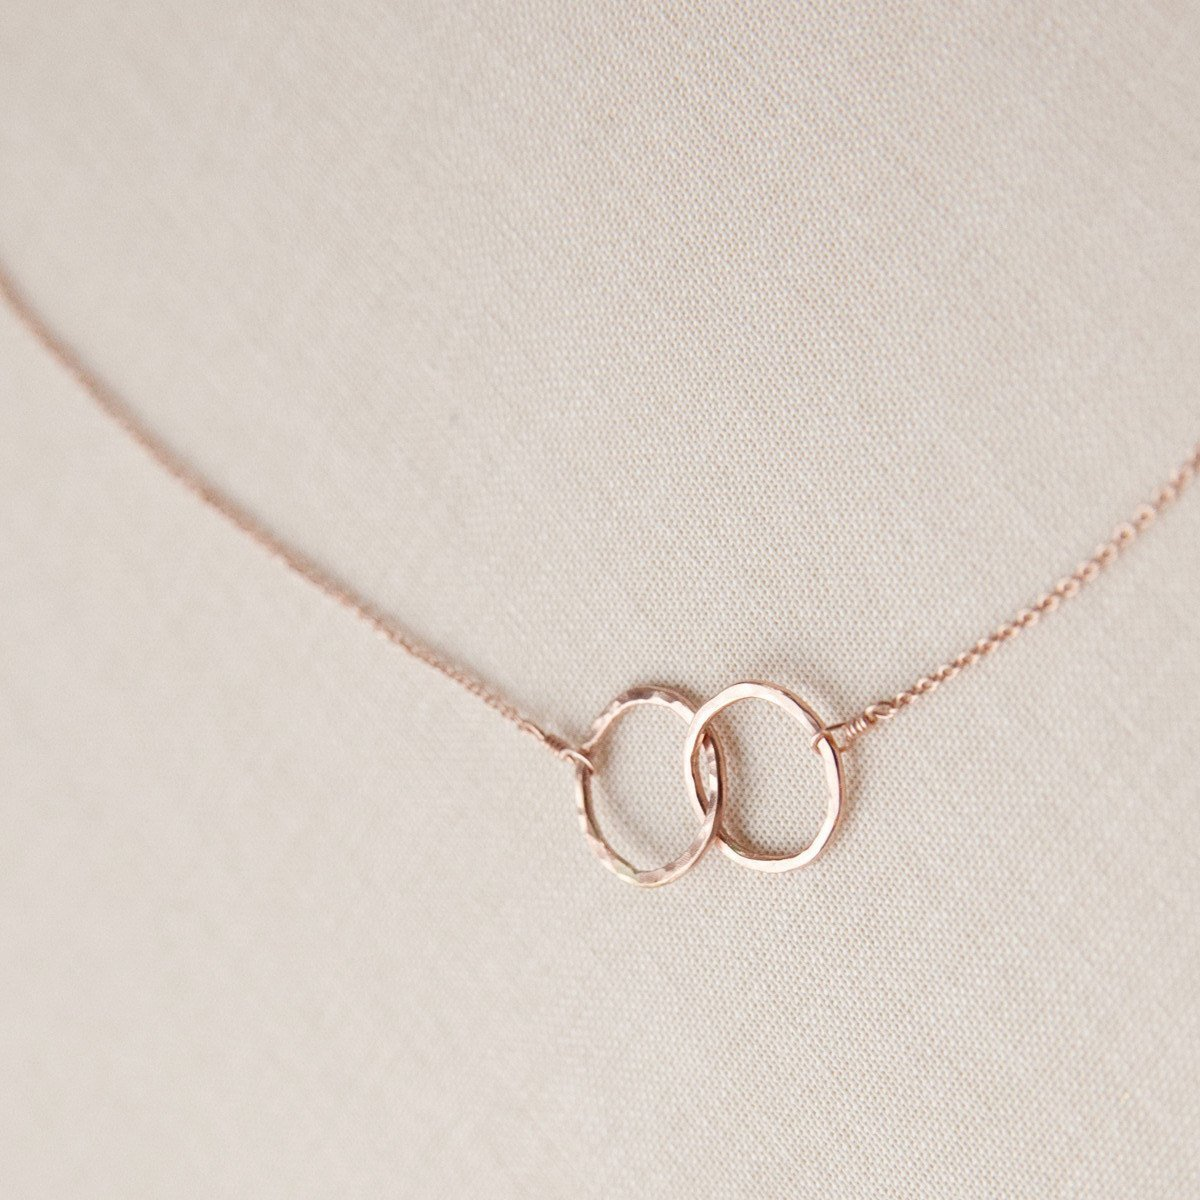 Aesthetic Necklace